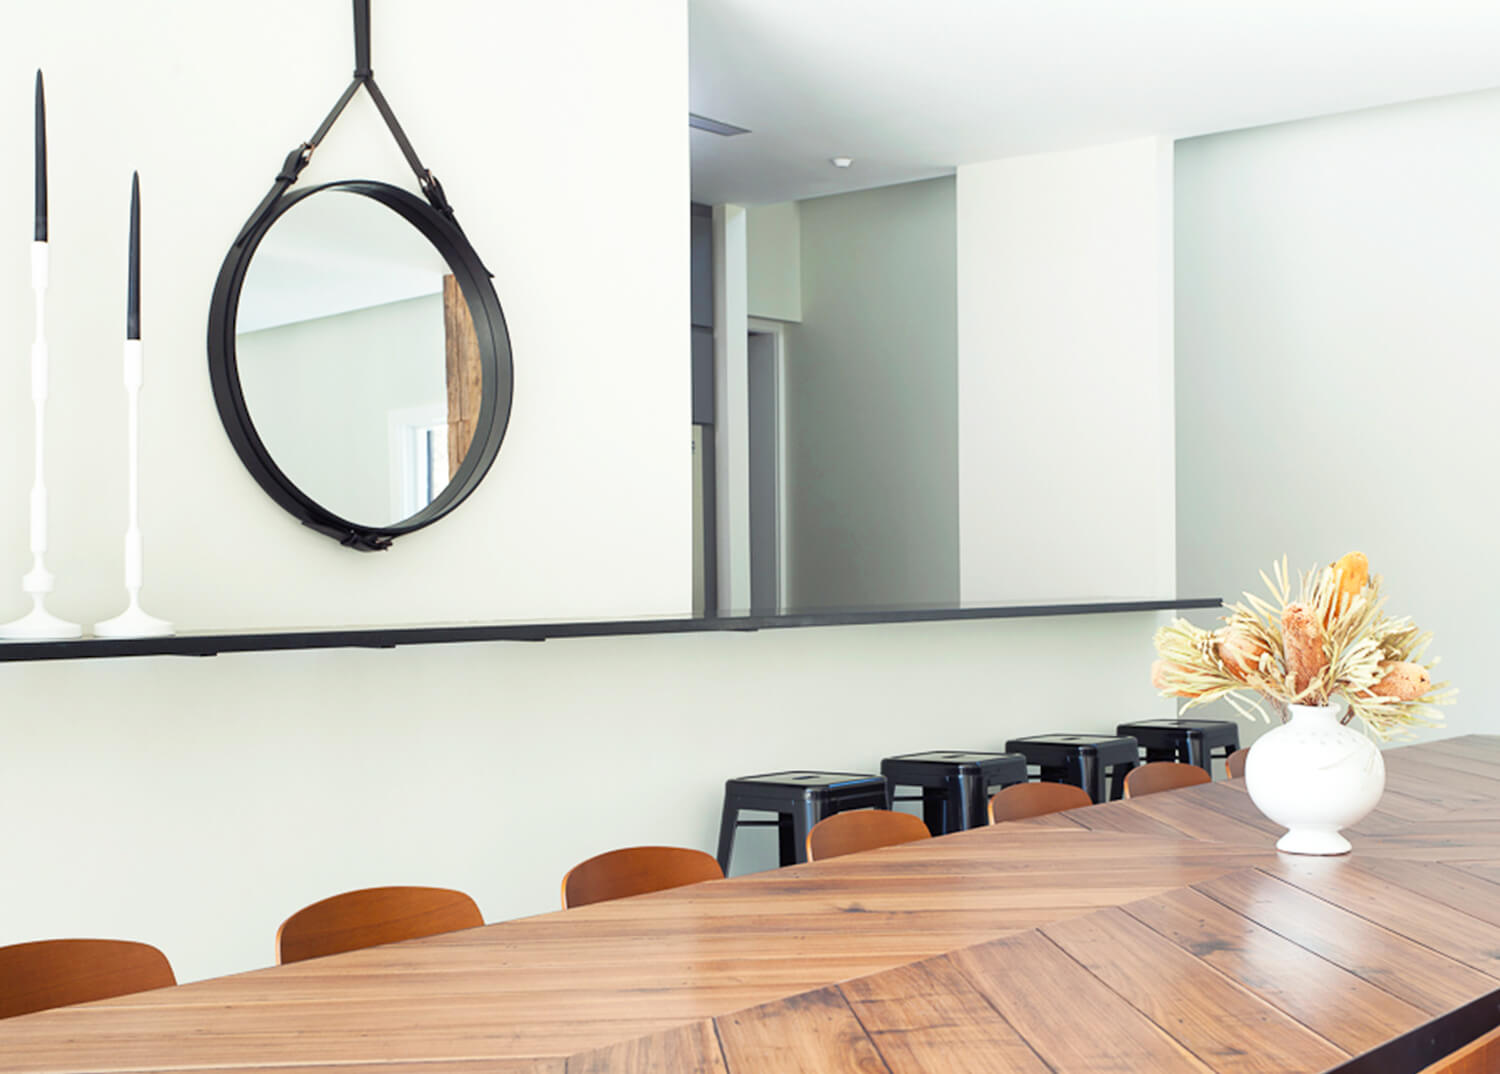 A clean and contemporary common dining area with a large dining table and round mirror hanging on the wall.